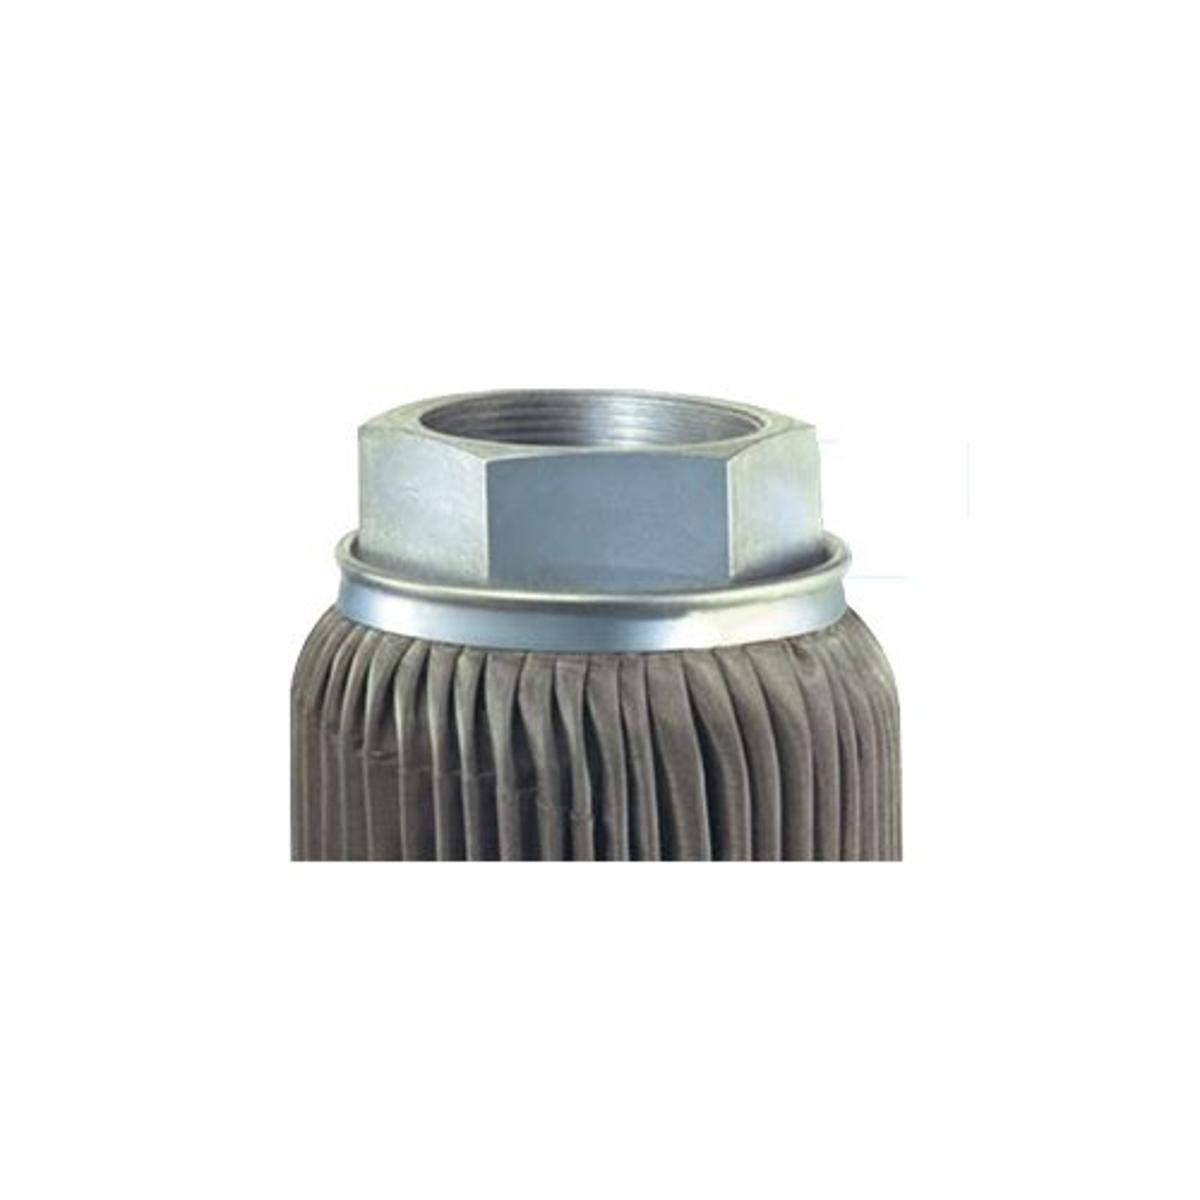 3//4 Female NPT C5 3//4 60 Crimped Suction Strainer 5 GPM Flow Ezy Filters 60 Mesh Size 3//4 Female NPT Inc